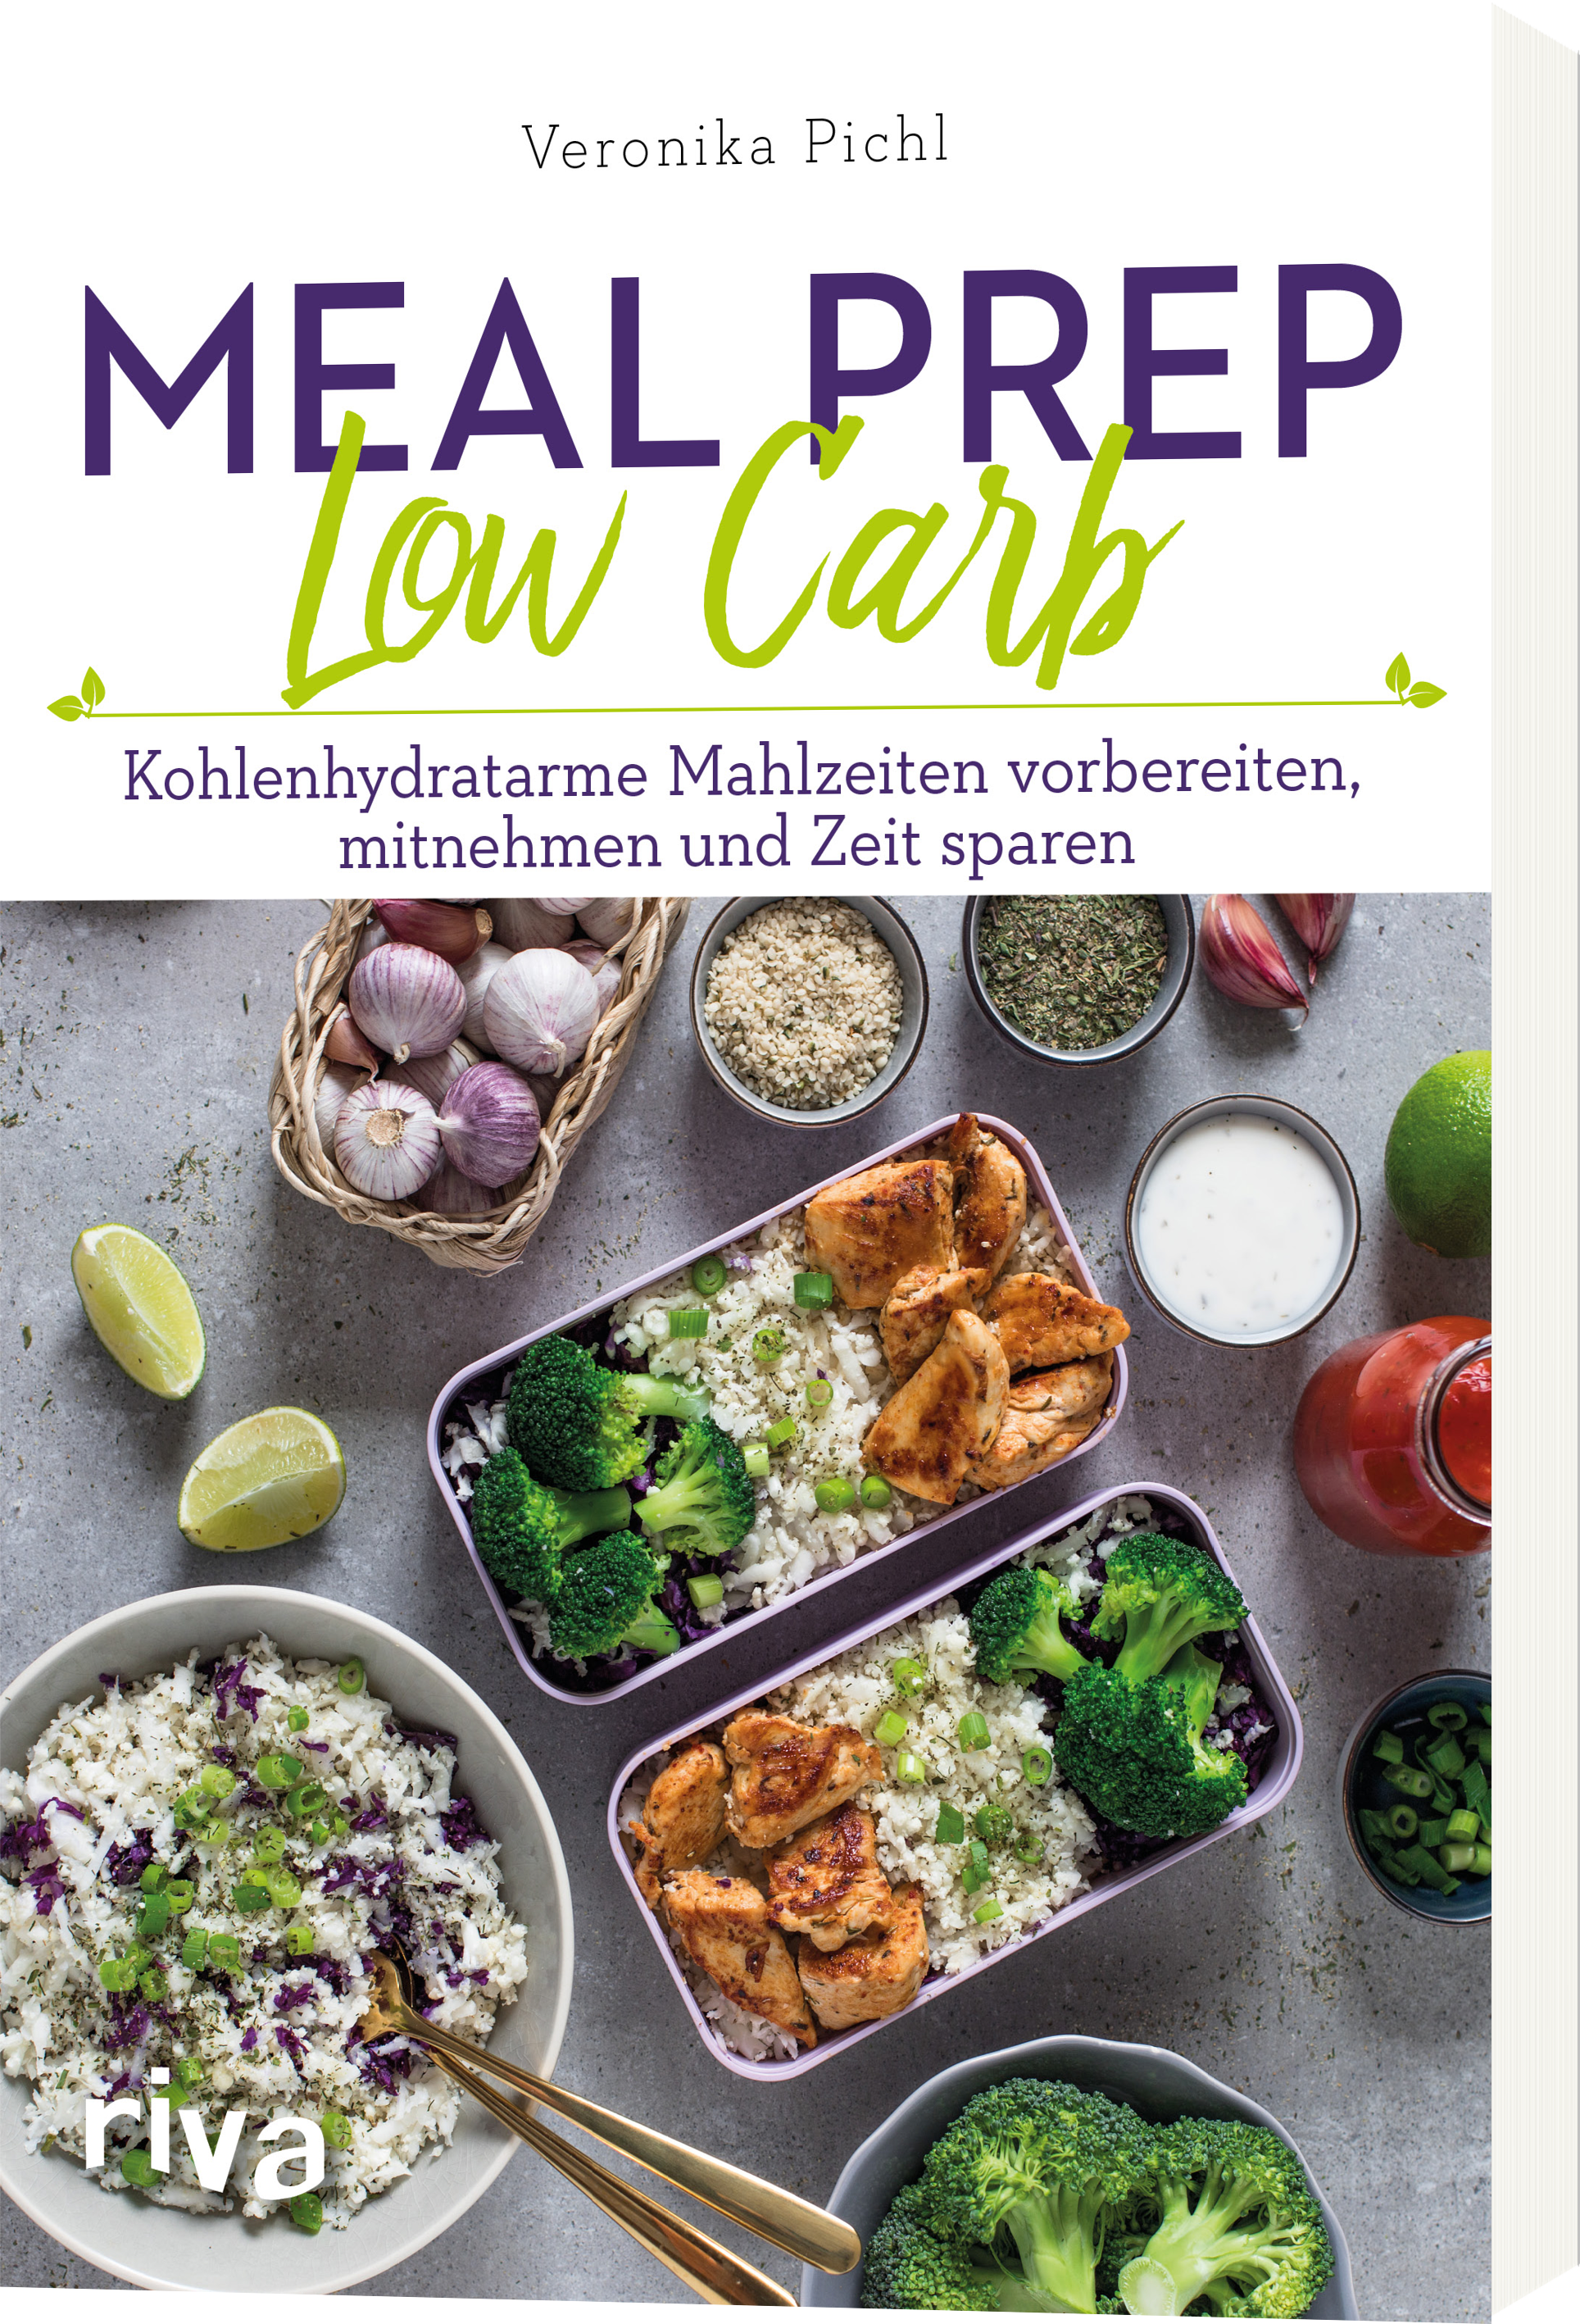 Buchvorstellung Meal Prep Low Carb